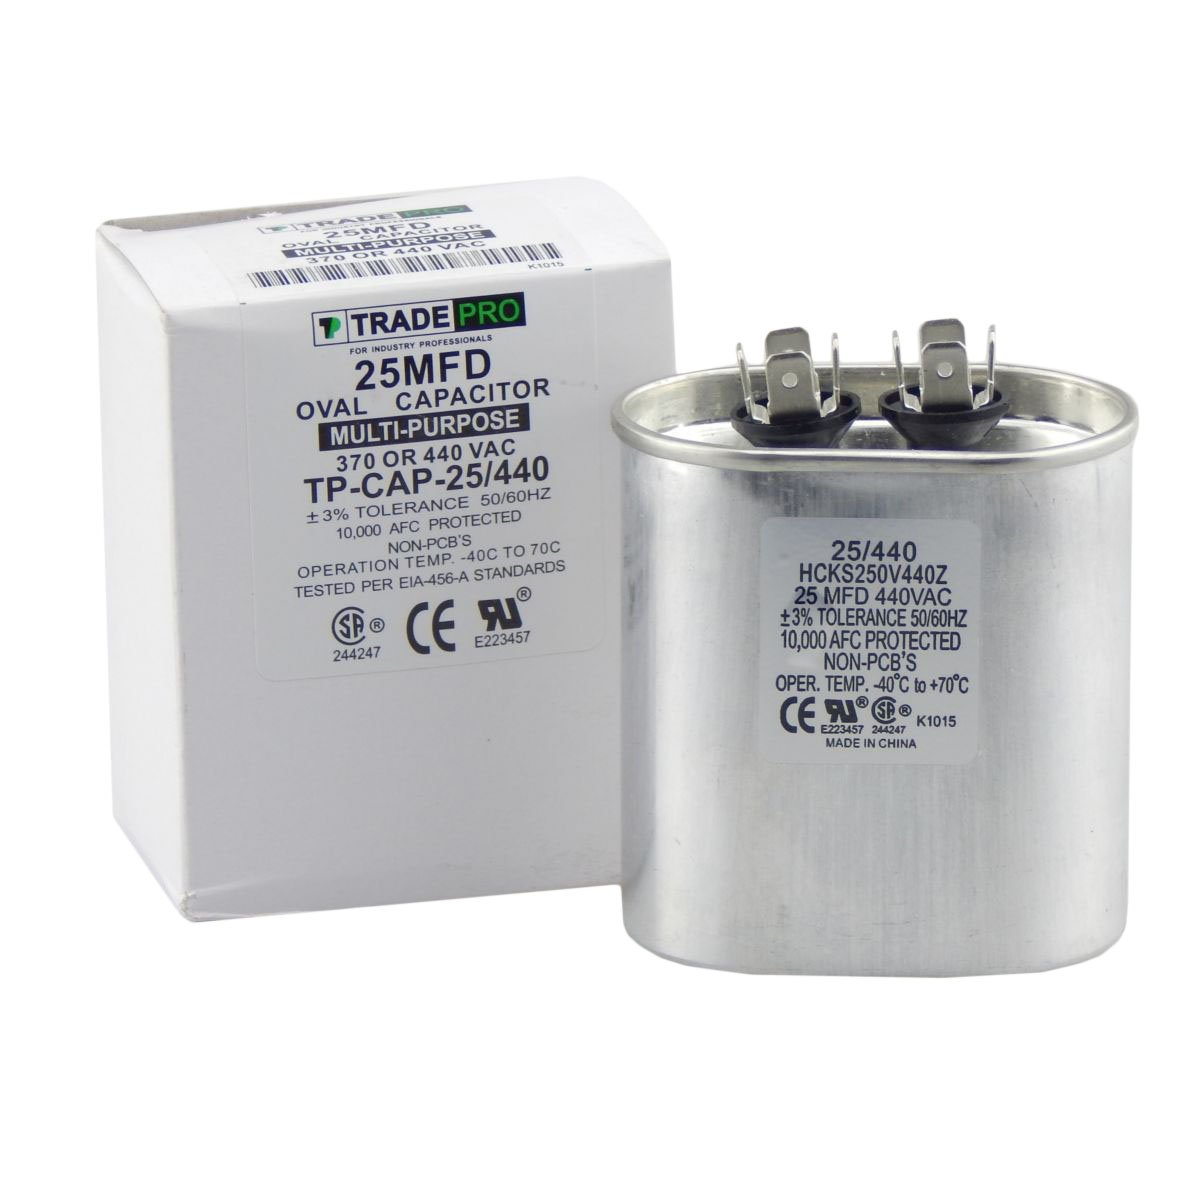 25 mfd Capacitor, Industrial Grade Replacement for Central Air-Conditioners, Heat Pumps, Condenser Fan Motors, and Compressors. Oval Multi-Purpose 370/440 Volt - by Trade Pro by TradePro